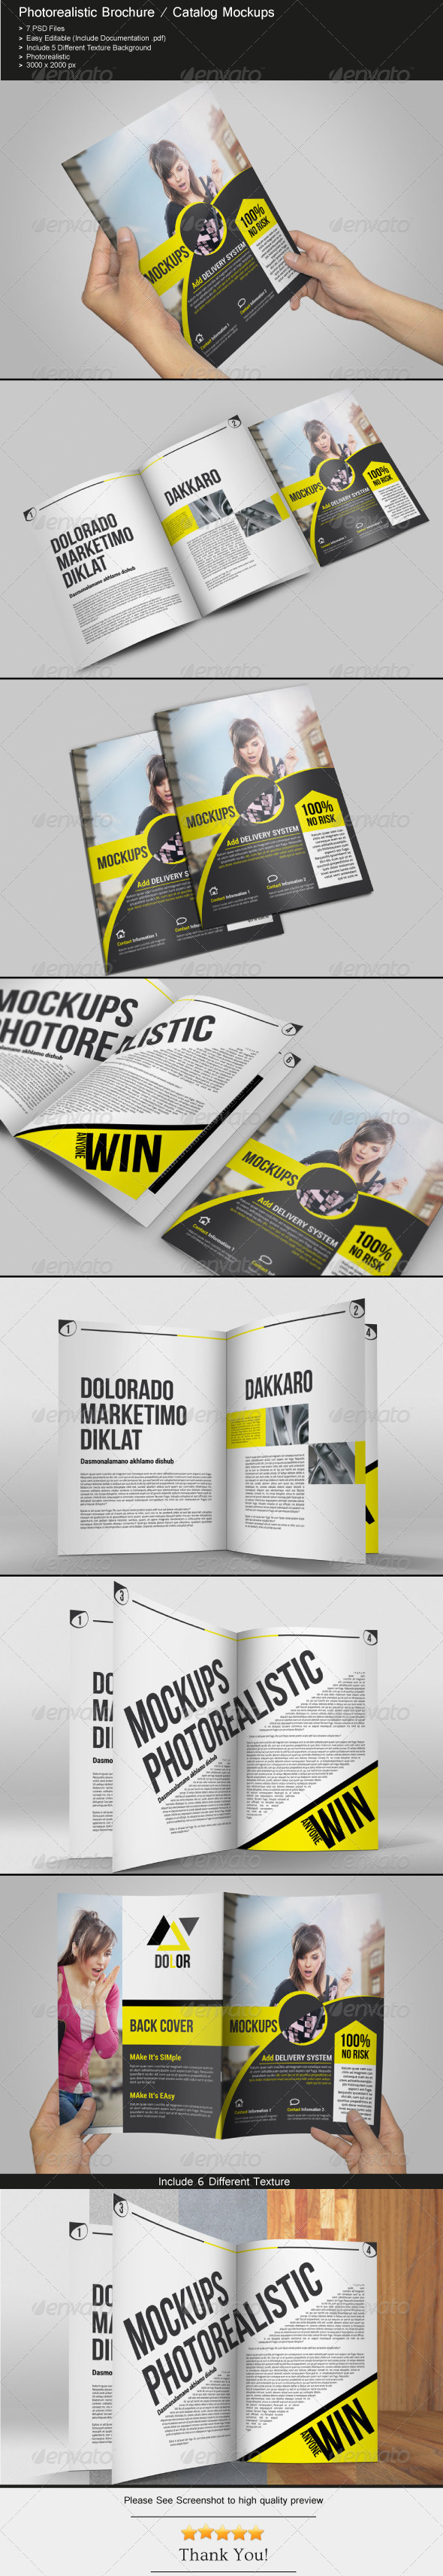 GraphicRiver Photorealistic Brochure Catalog Mockups 6757622